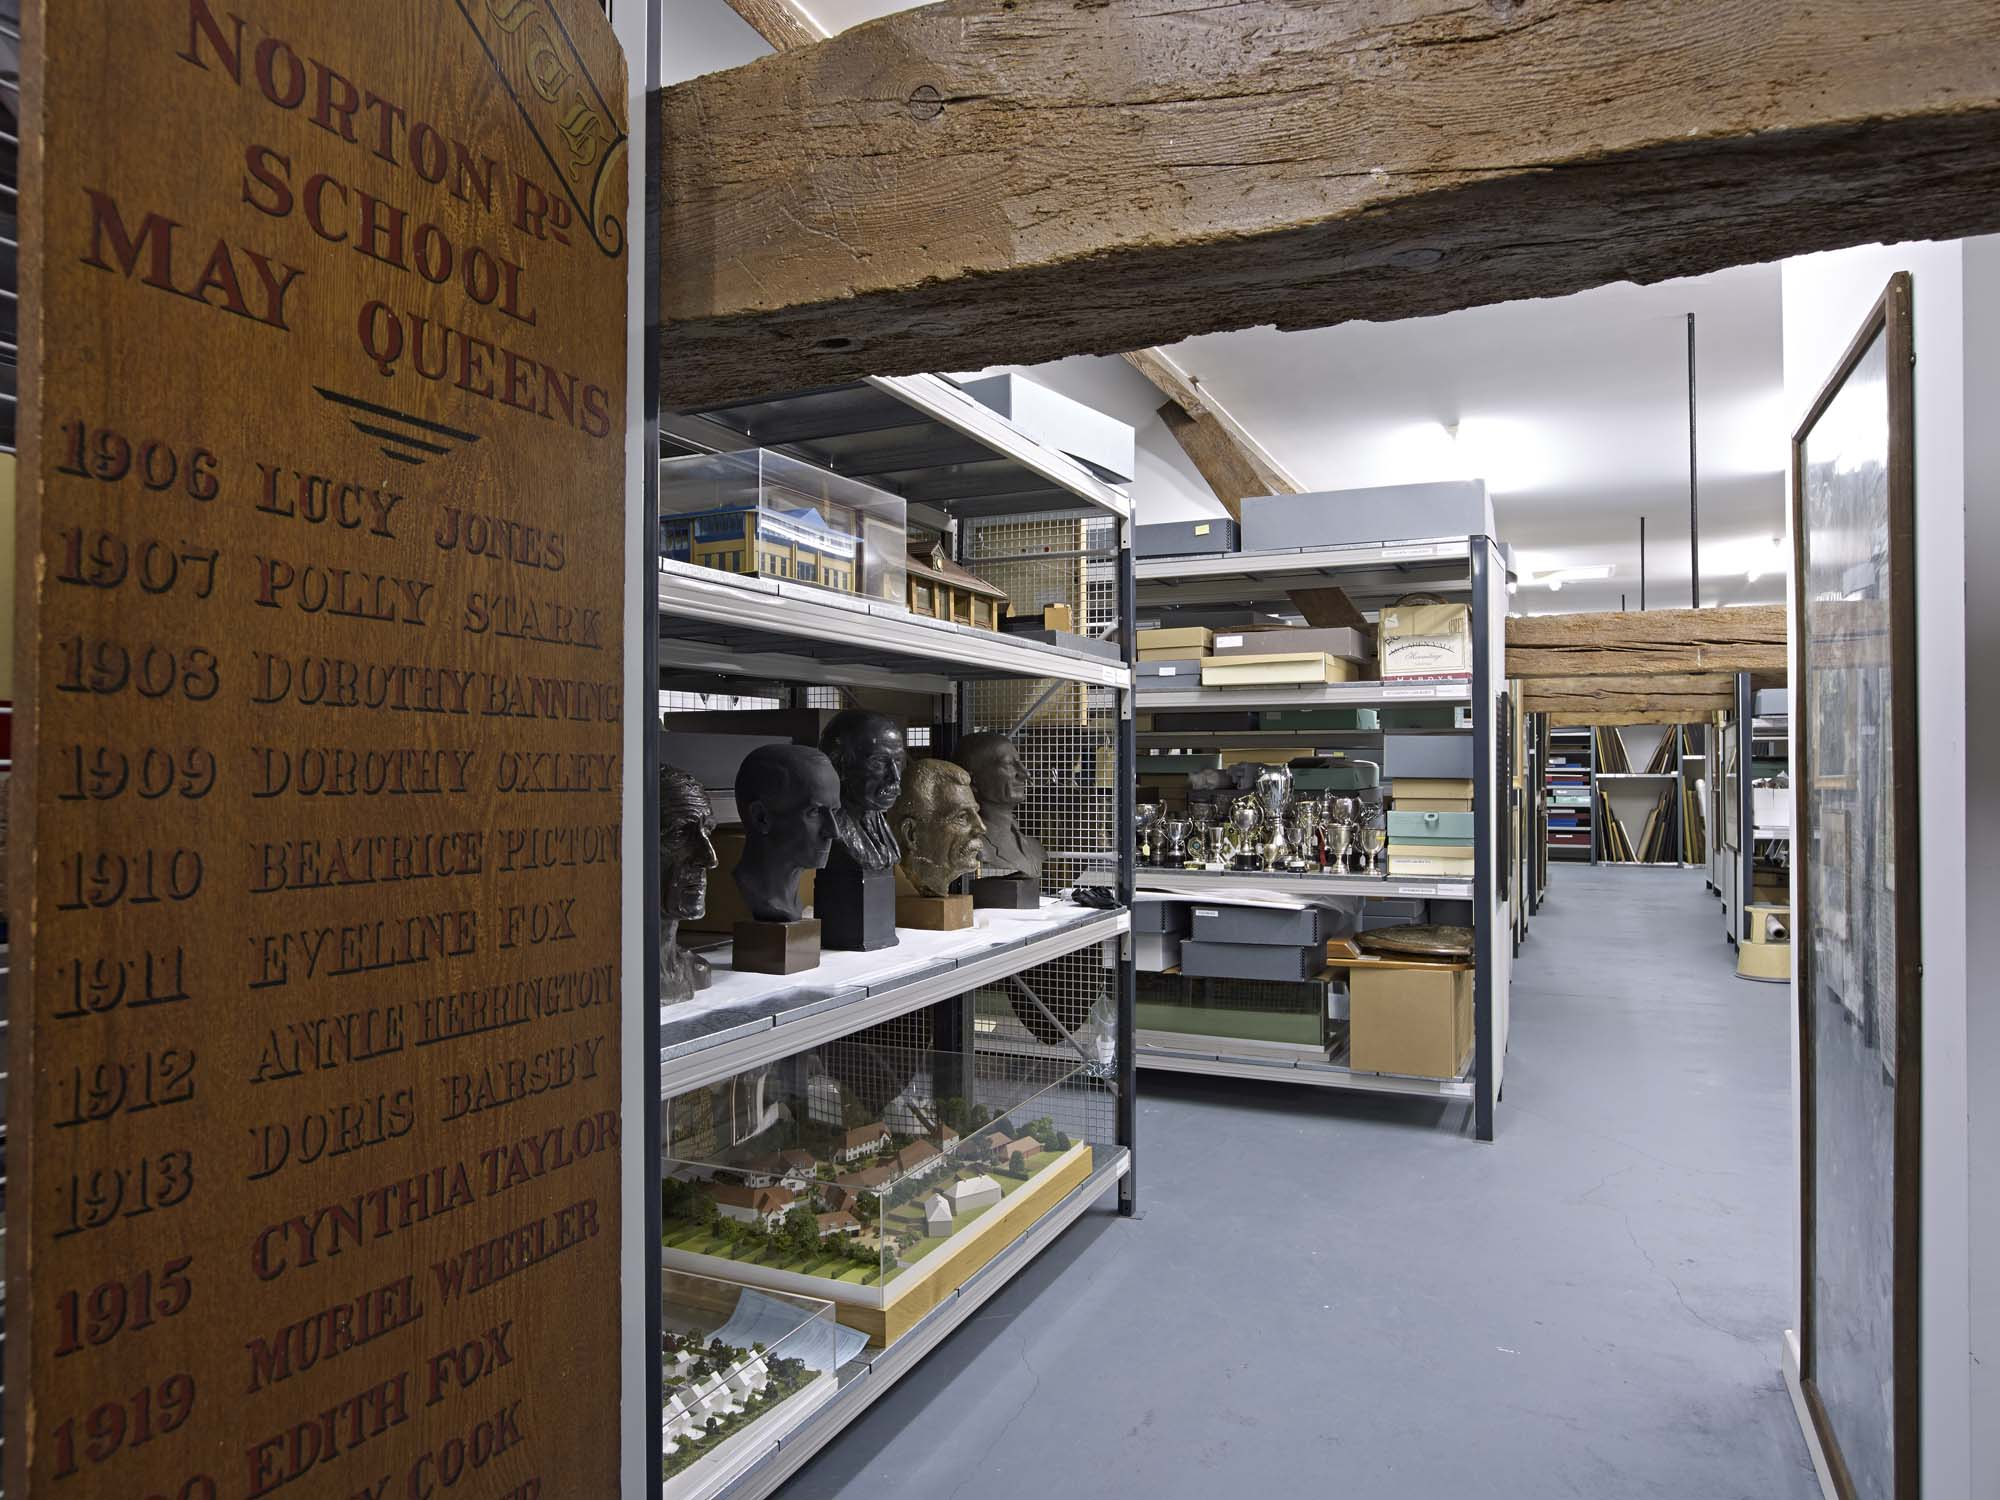 a photo of a store room filled with objects such as a series of sculpture busts